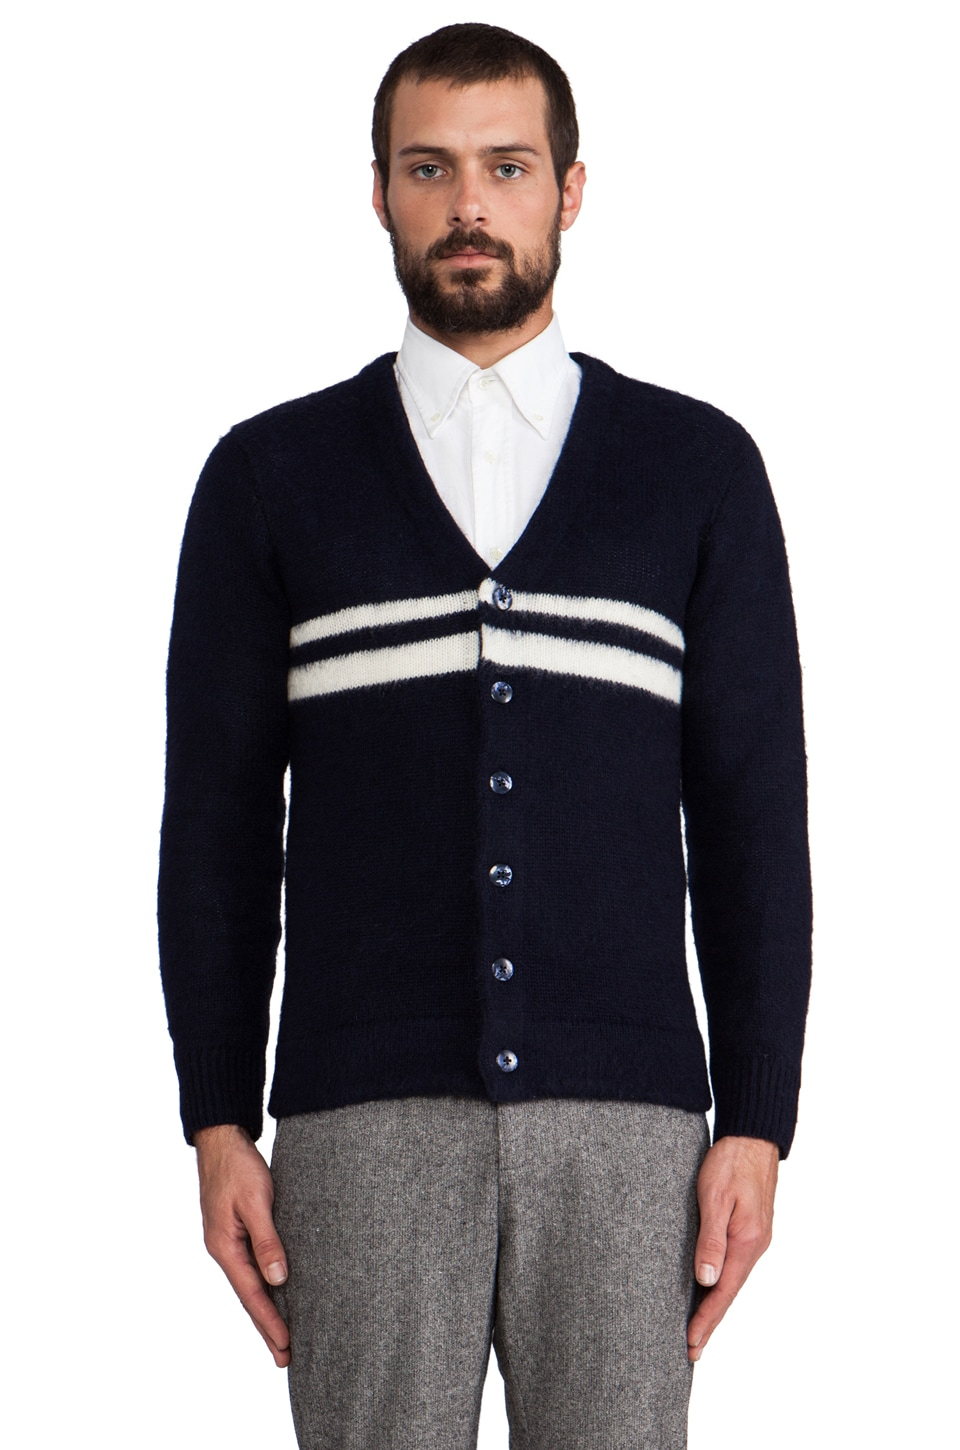 GANT Rugger The Rua Cardigan in Blue